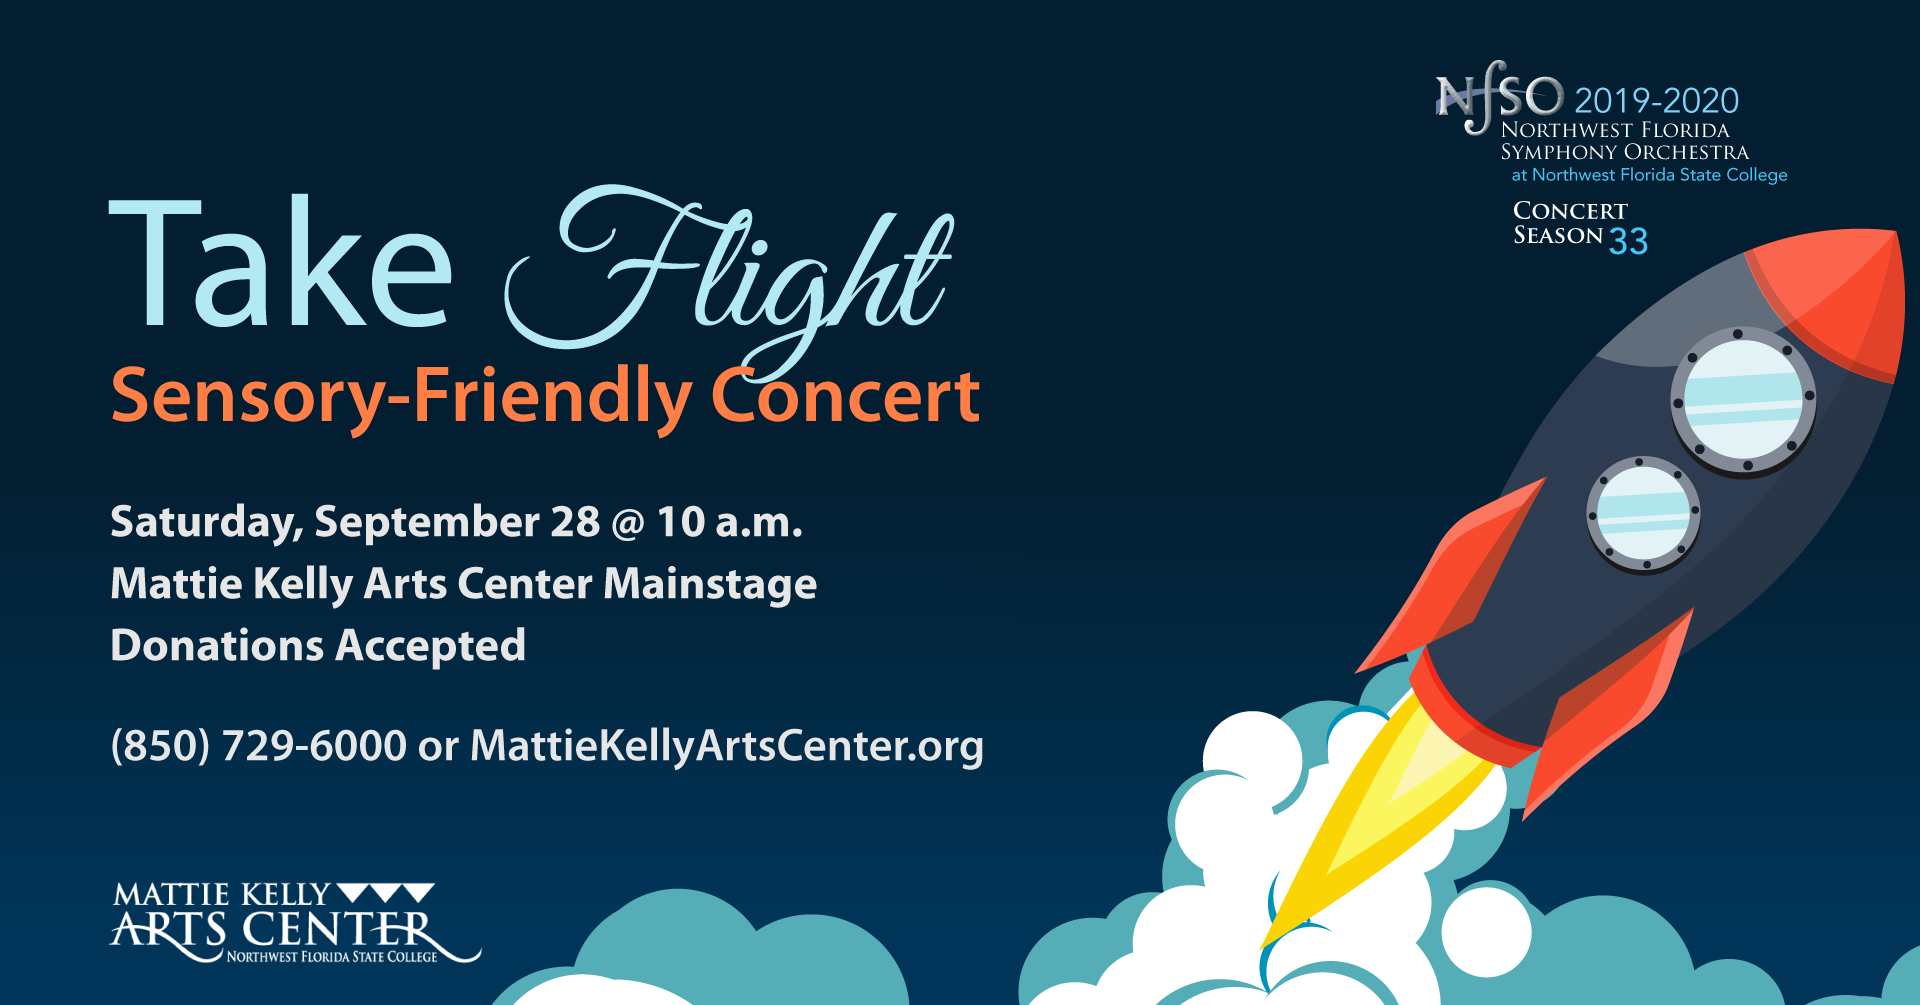 Take Flight Sensory-Friendly Concert on Saturday, Spetember 28 at 10 a.m. in the Mattie Kelly Arts Center Mainstage Theater. Donations accepted. Call (850) 729-6000 for more information.